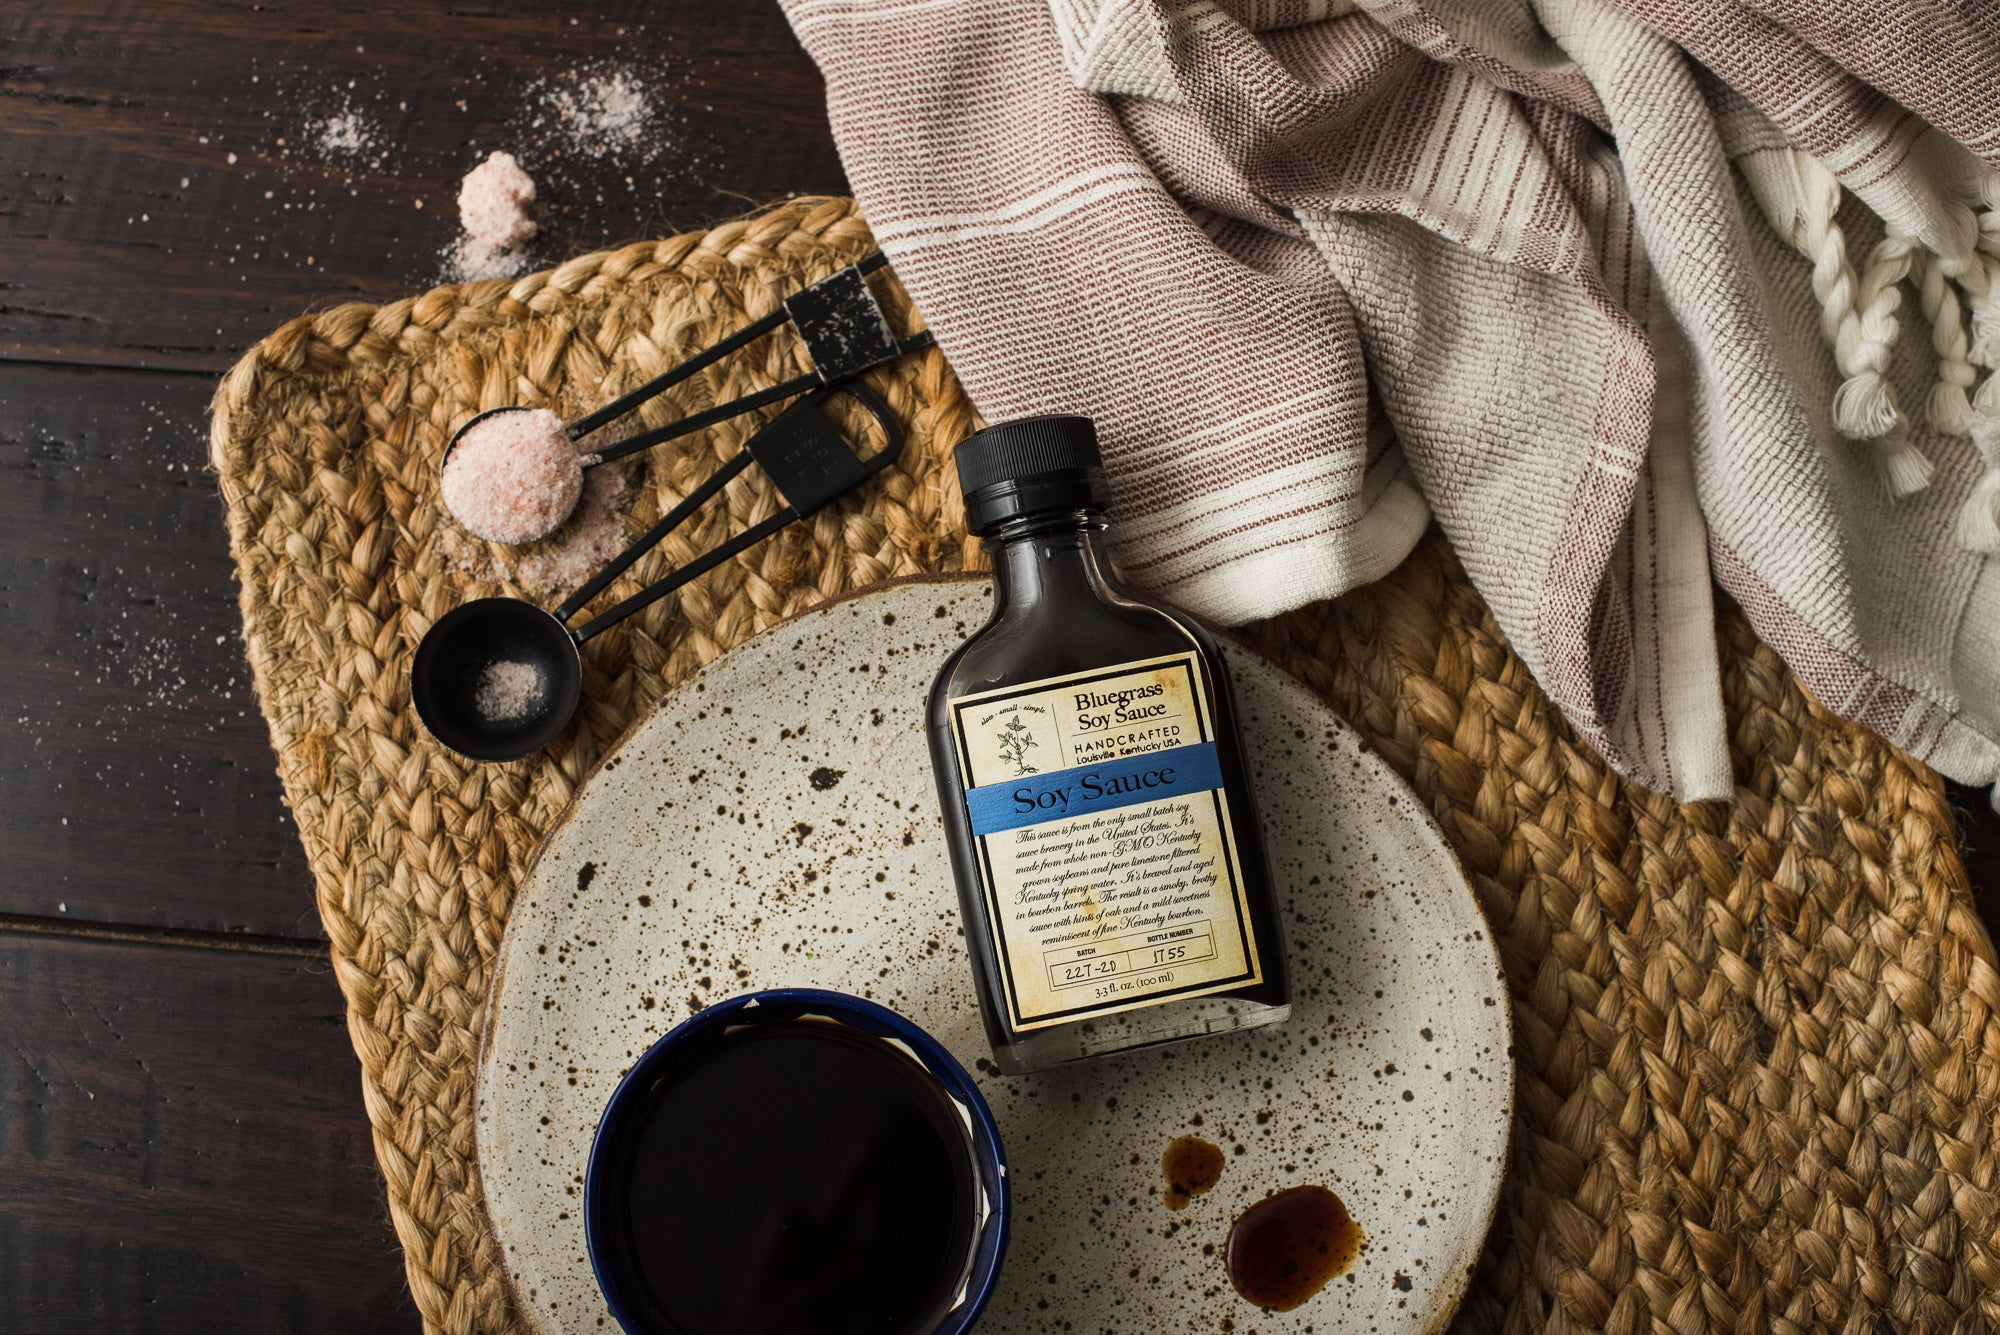 <a target='_blank' href='https://amzn.to/2L646b5'>Bourbon Barrel Soy Sauce or Worcestershire Sauce</a>